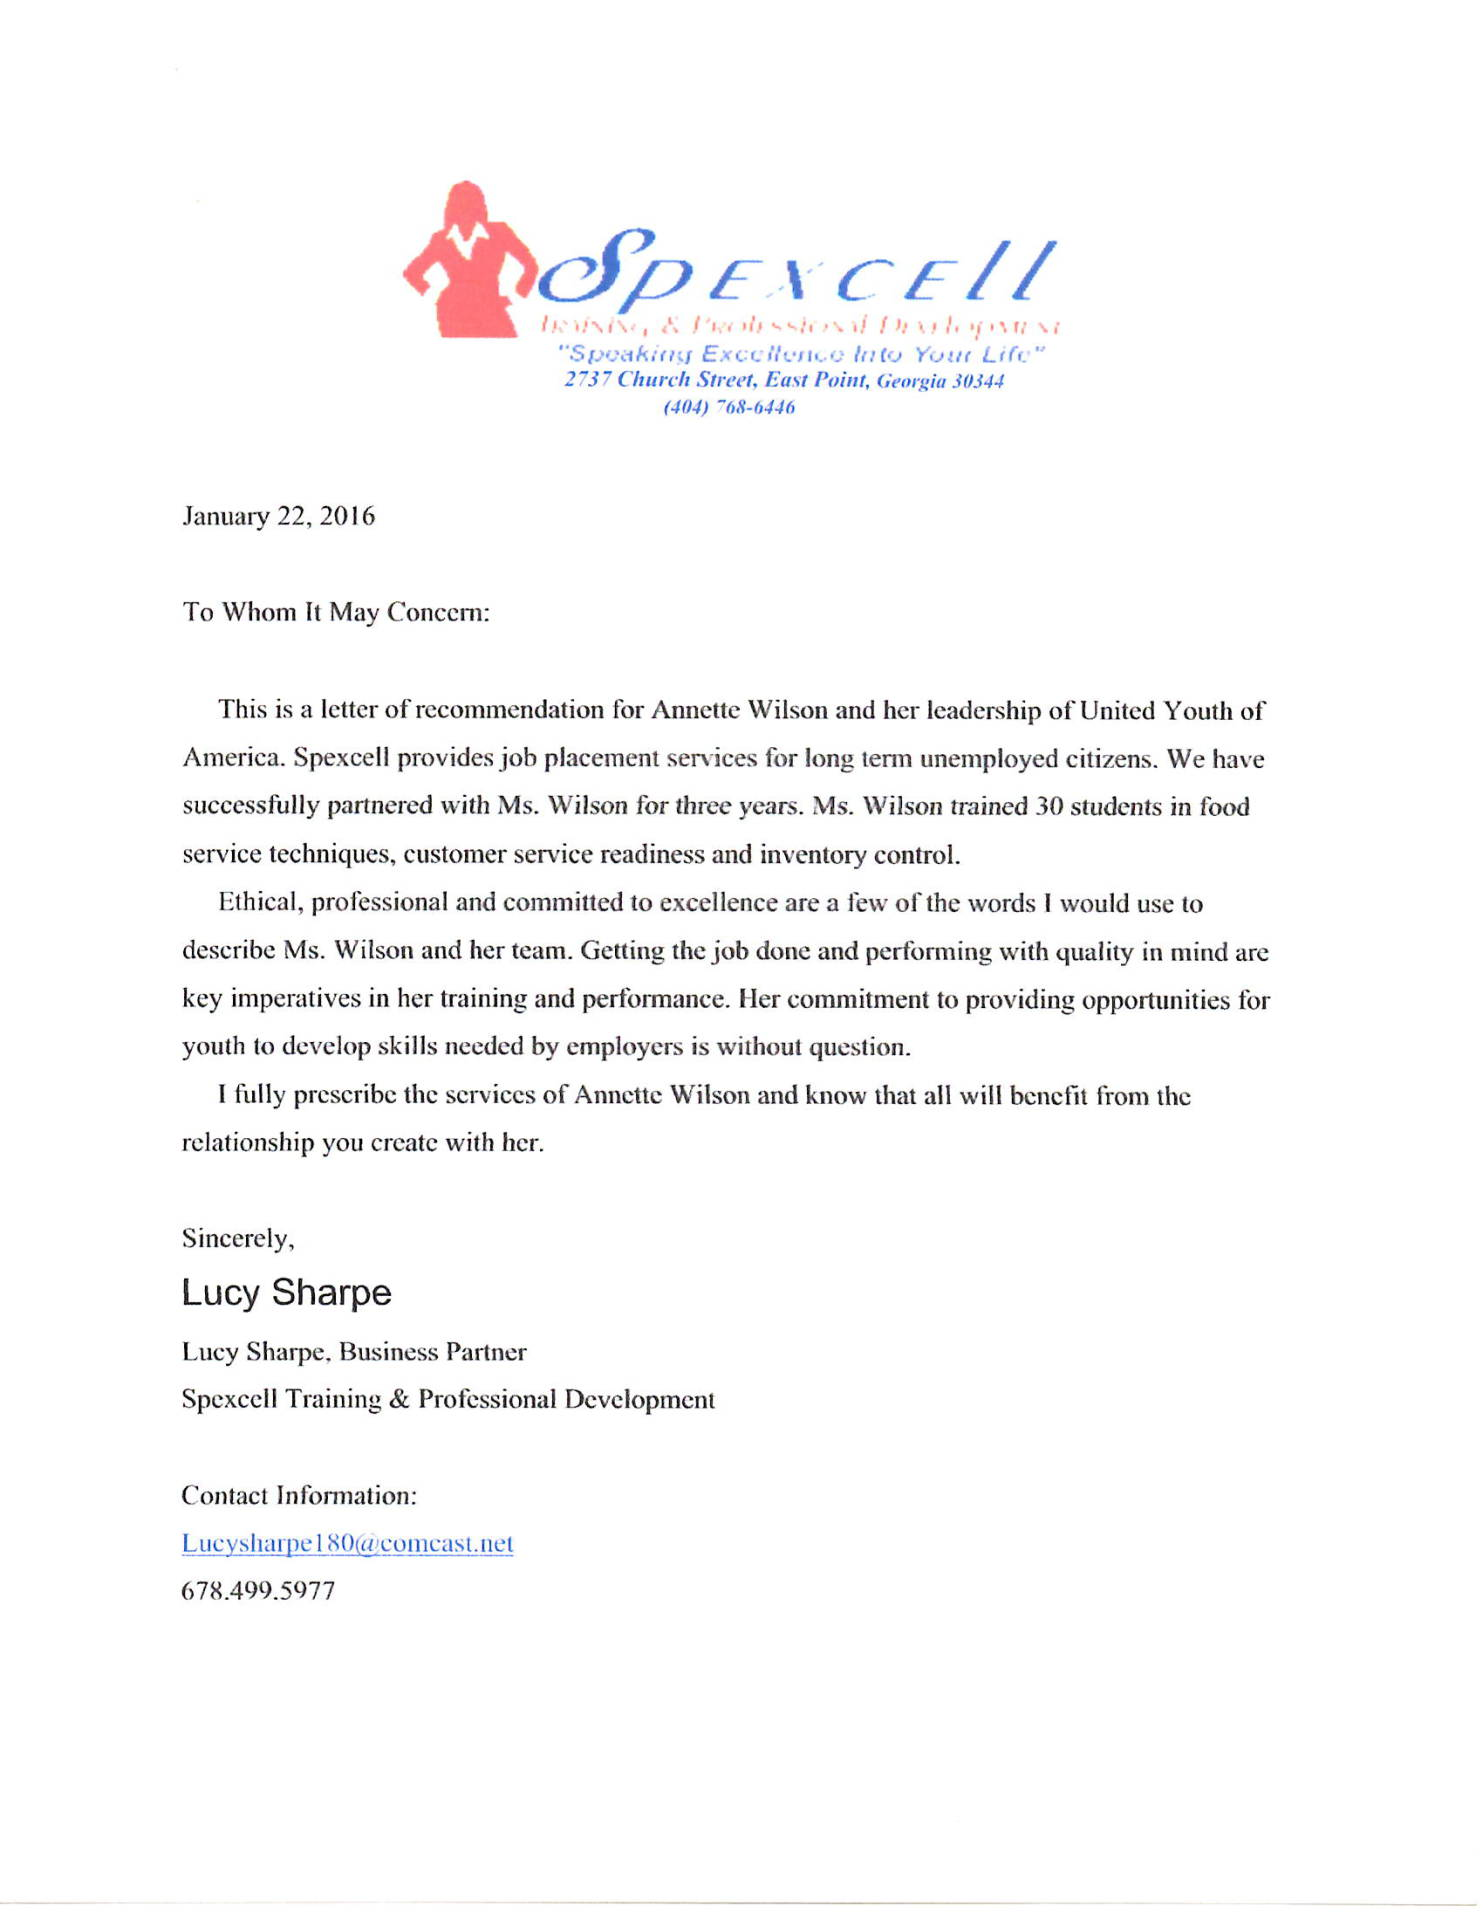 Recommandation Letter Spexcell NonProfit Organization